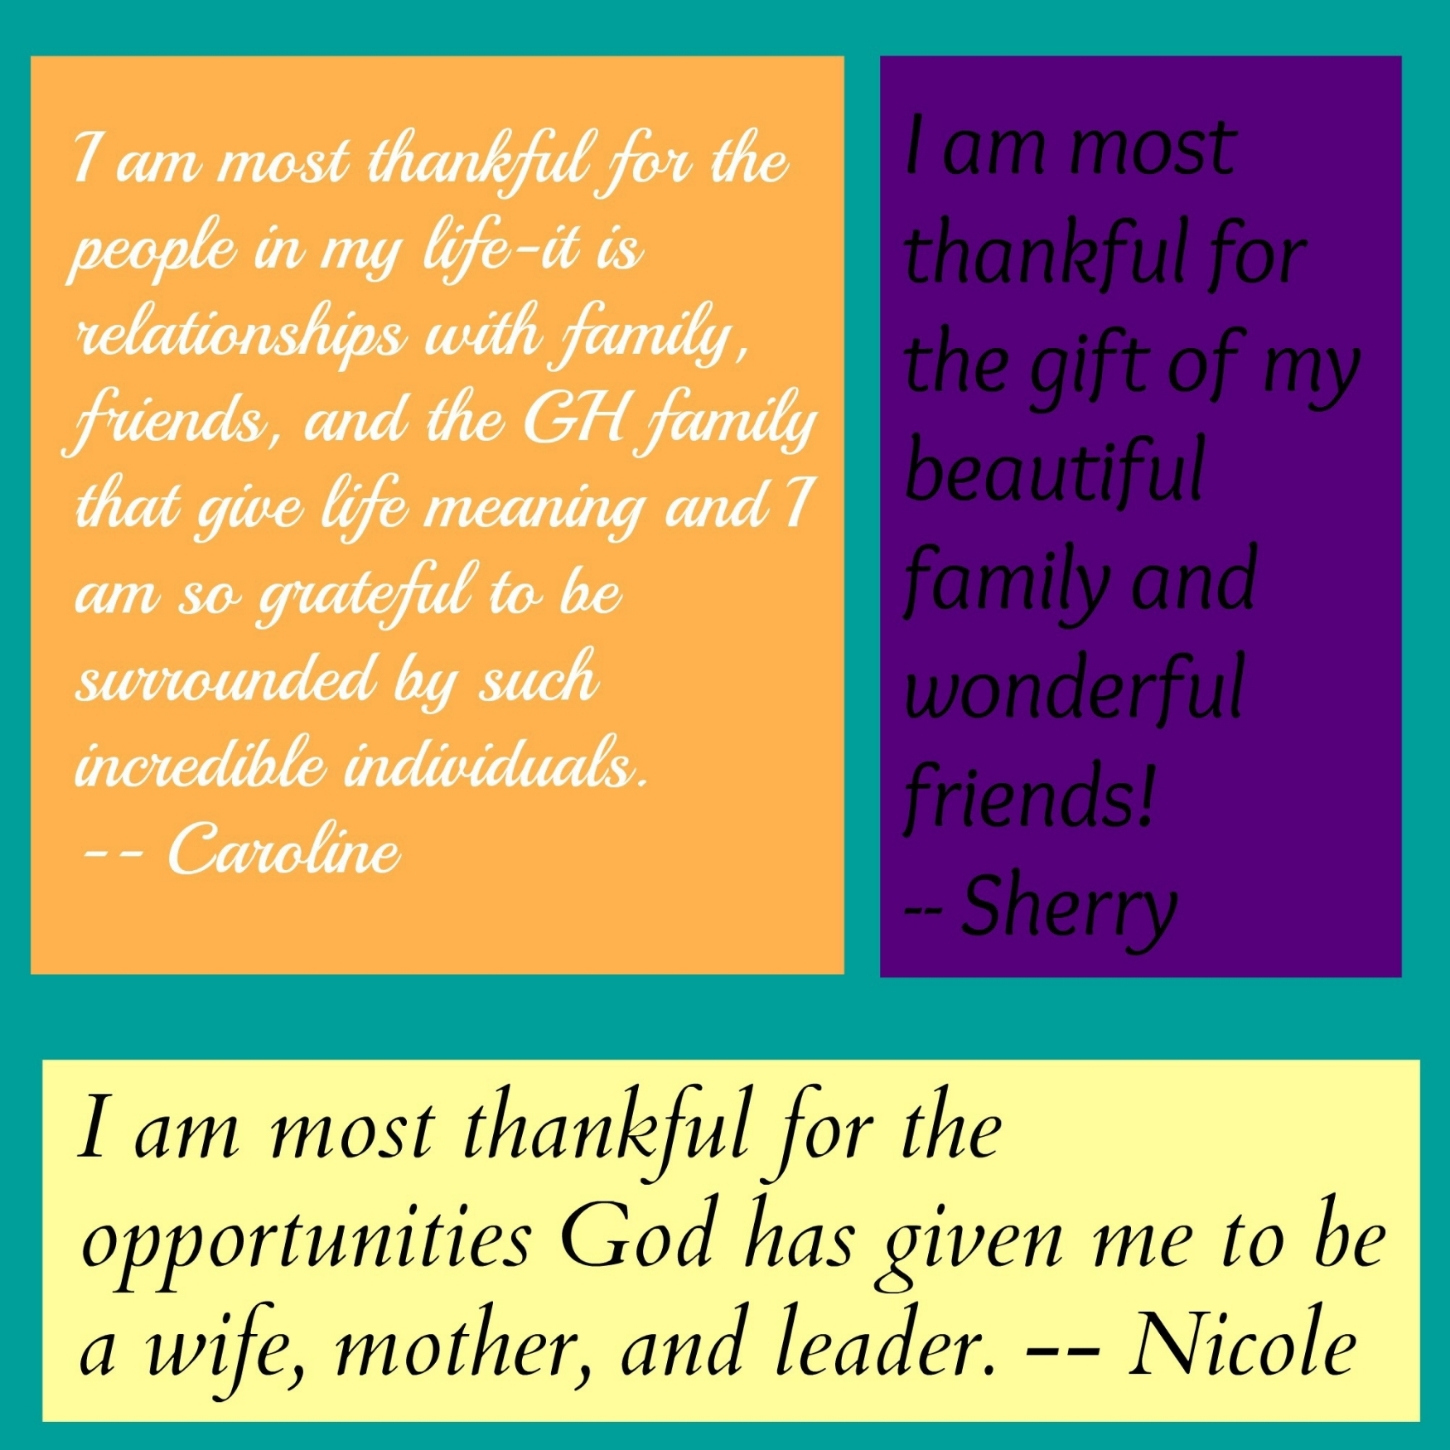 Staff Thanksgiving Quotes 2013.jpg